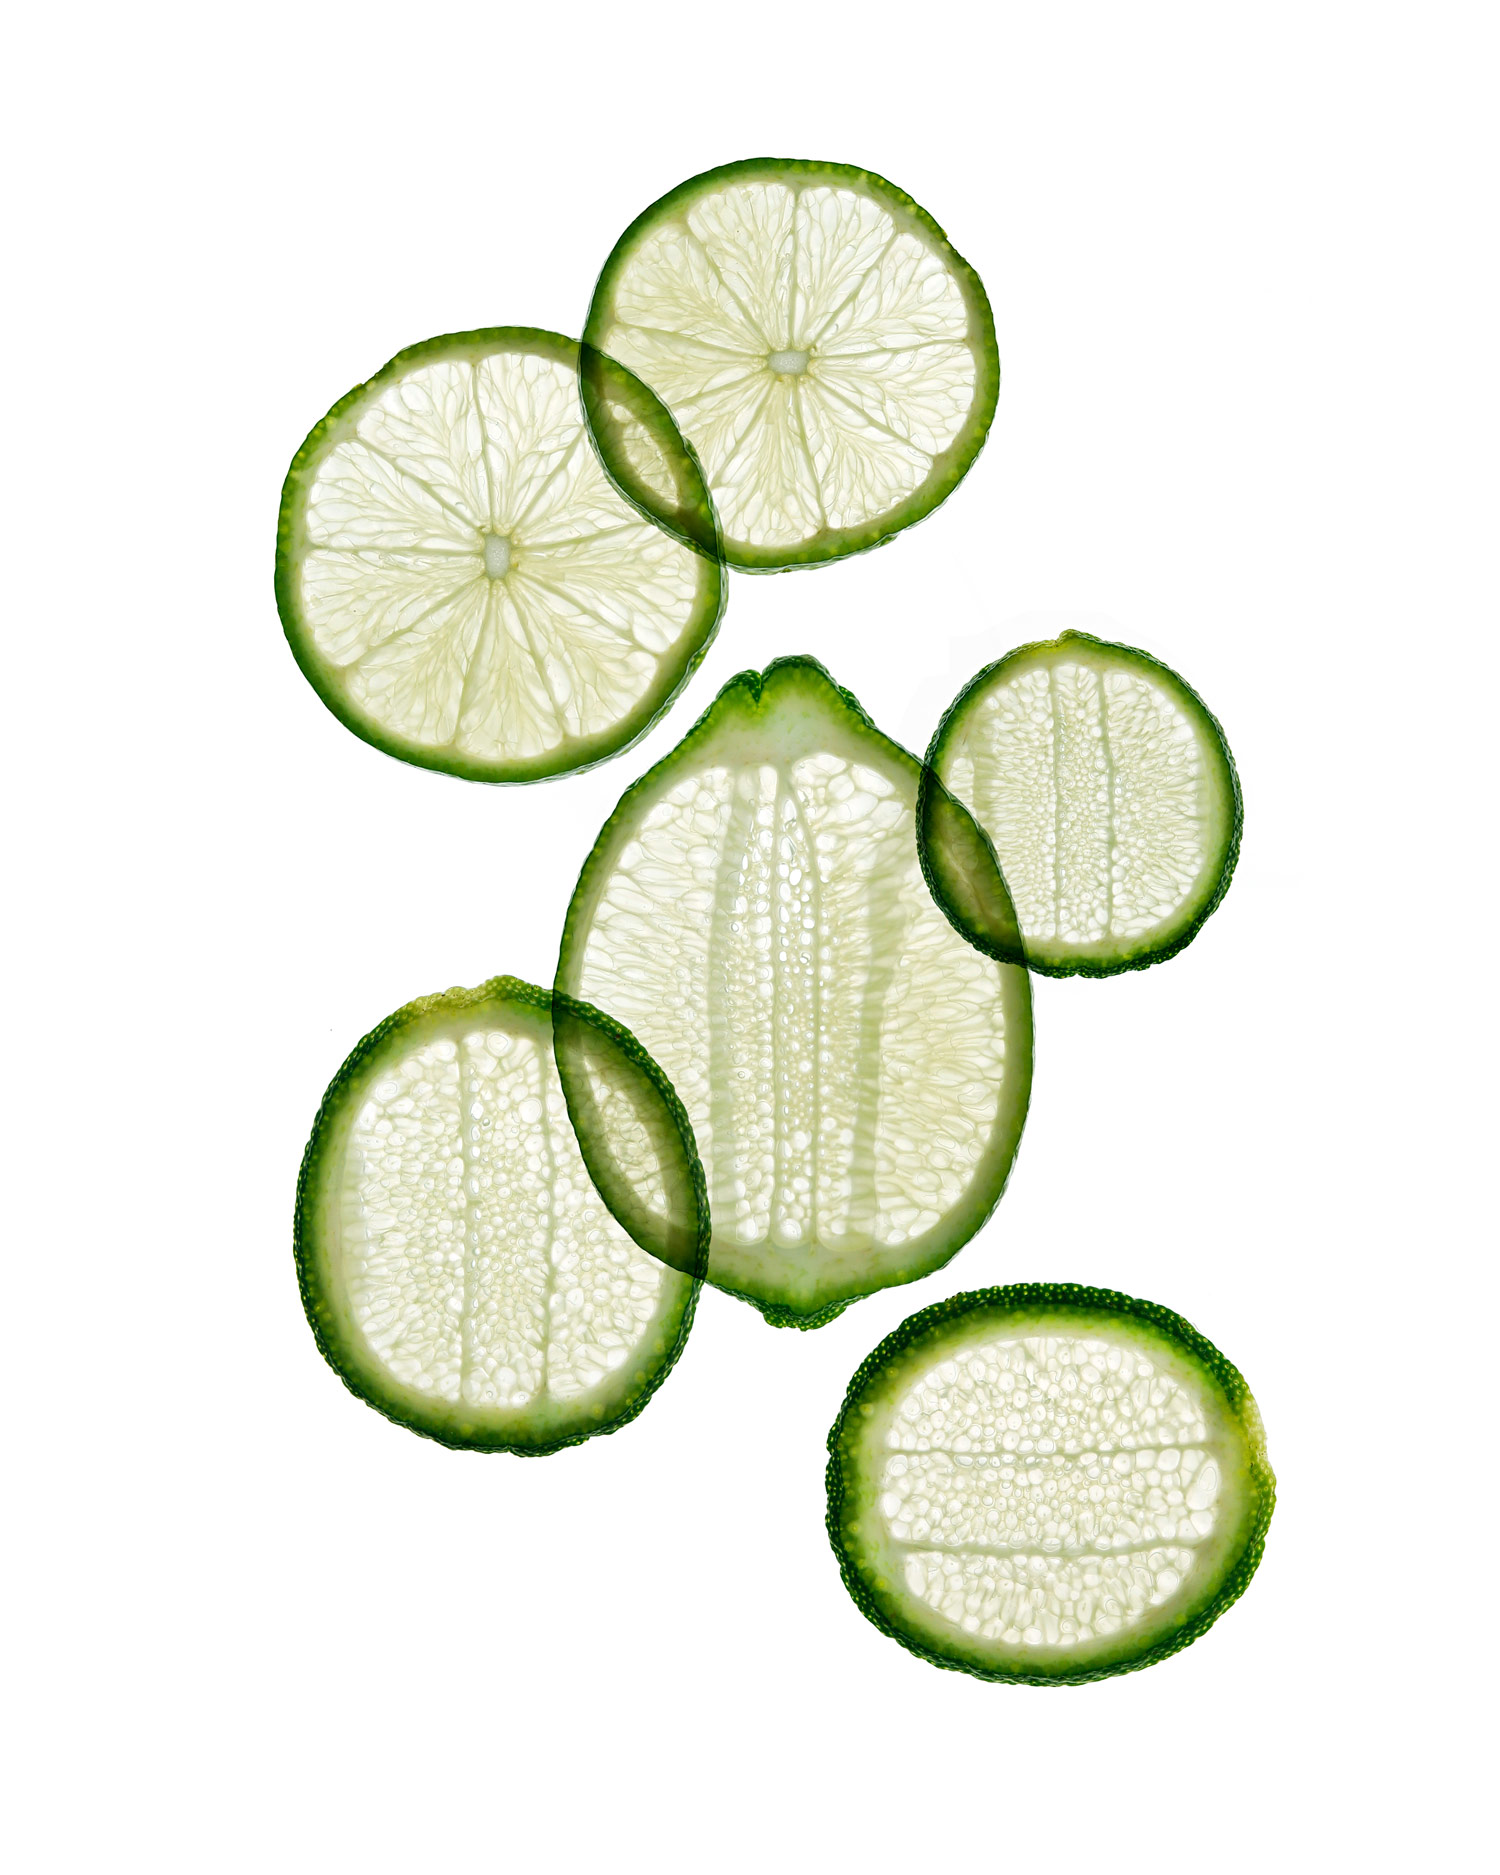 limes should be easy